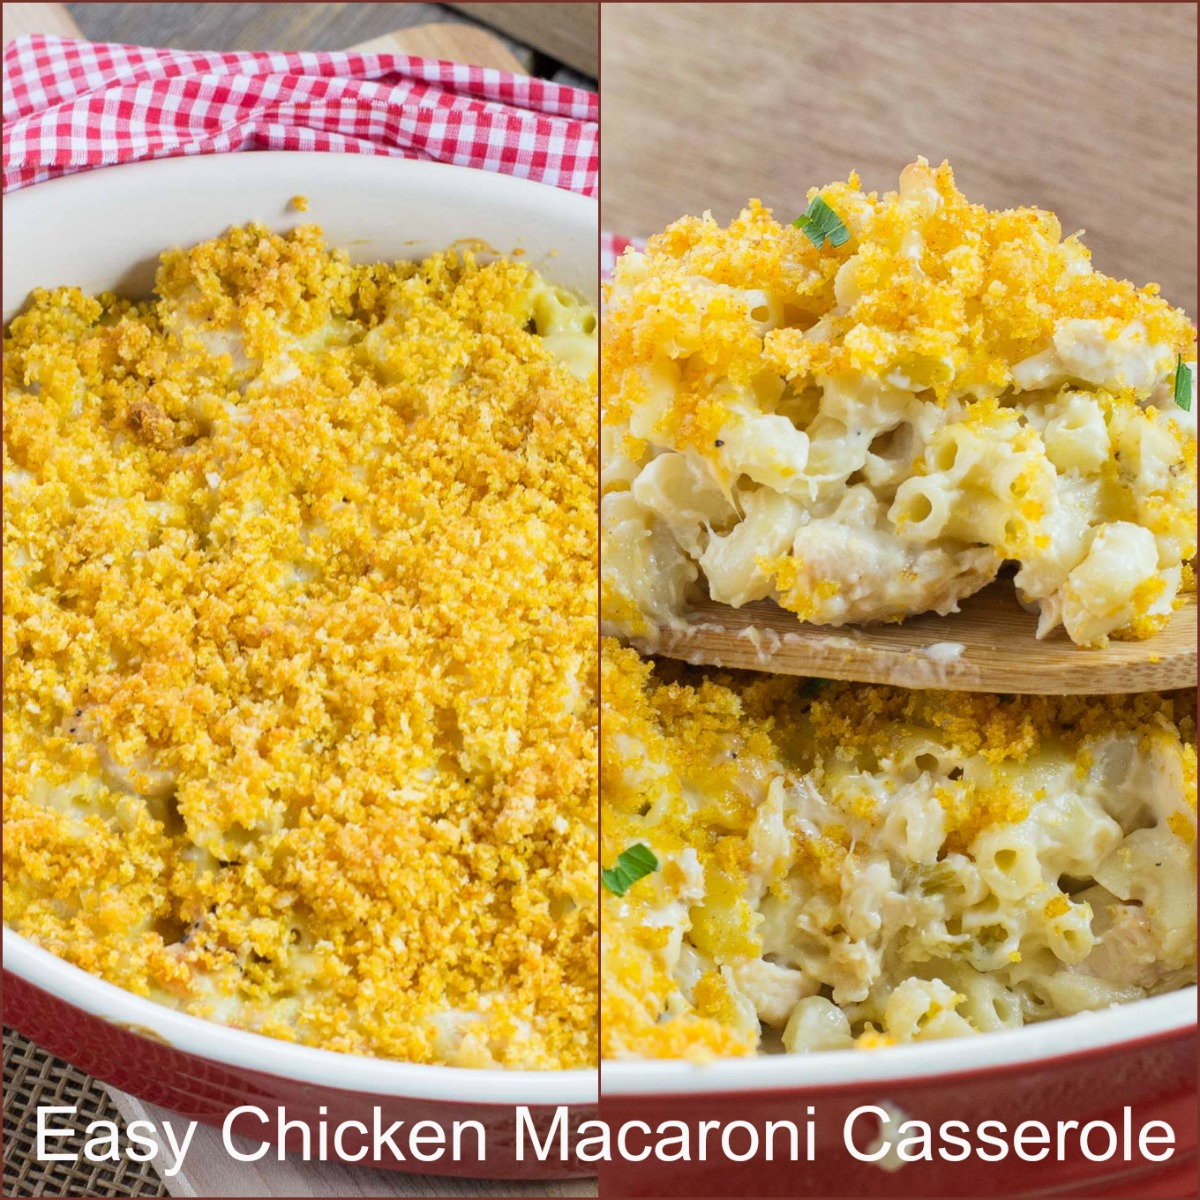 Chicken Macaroni Casserole is a quick and easy recipe. A cheesy casserole the kids will love. Great for leftover chicken or store bought rotisserie chicken.